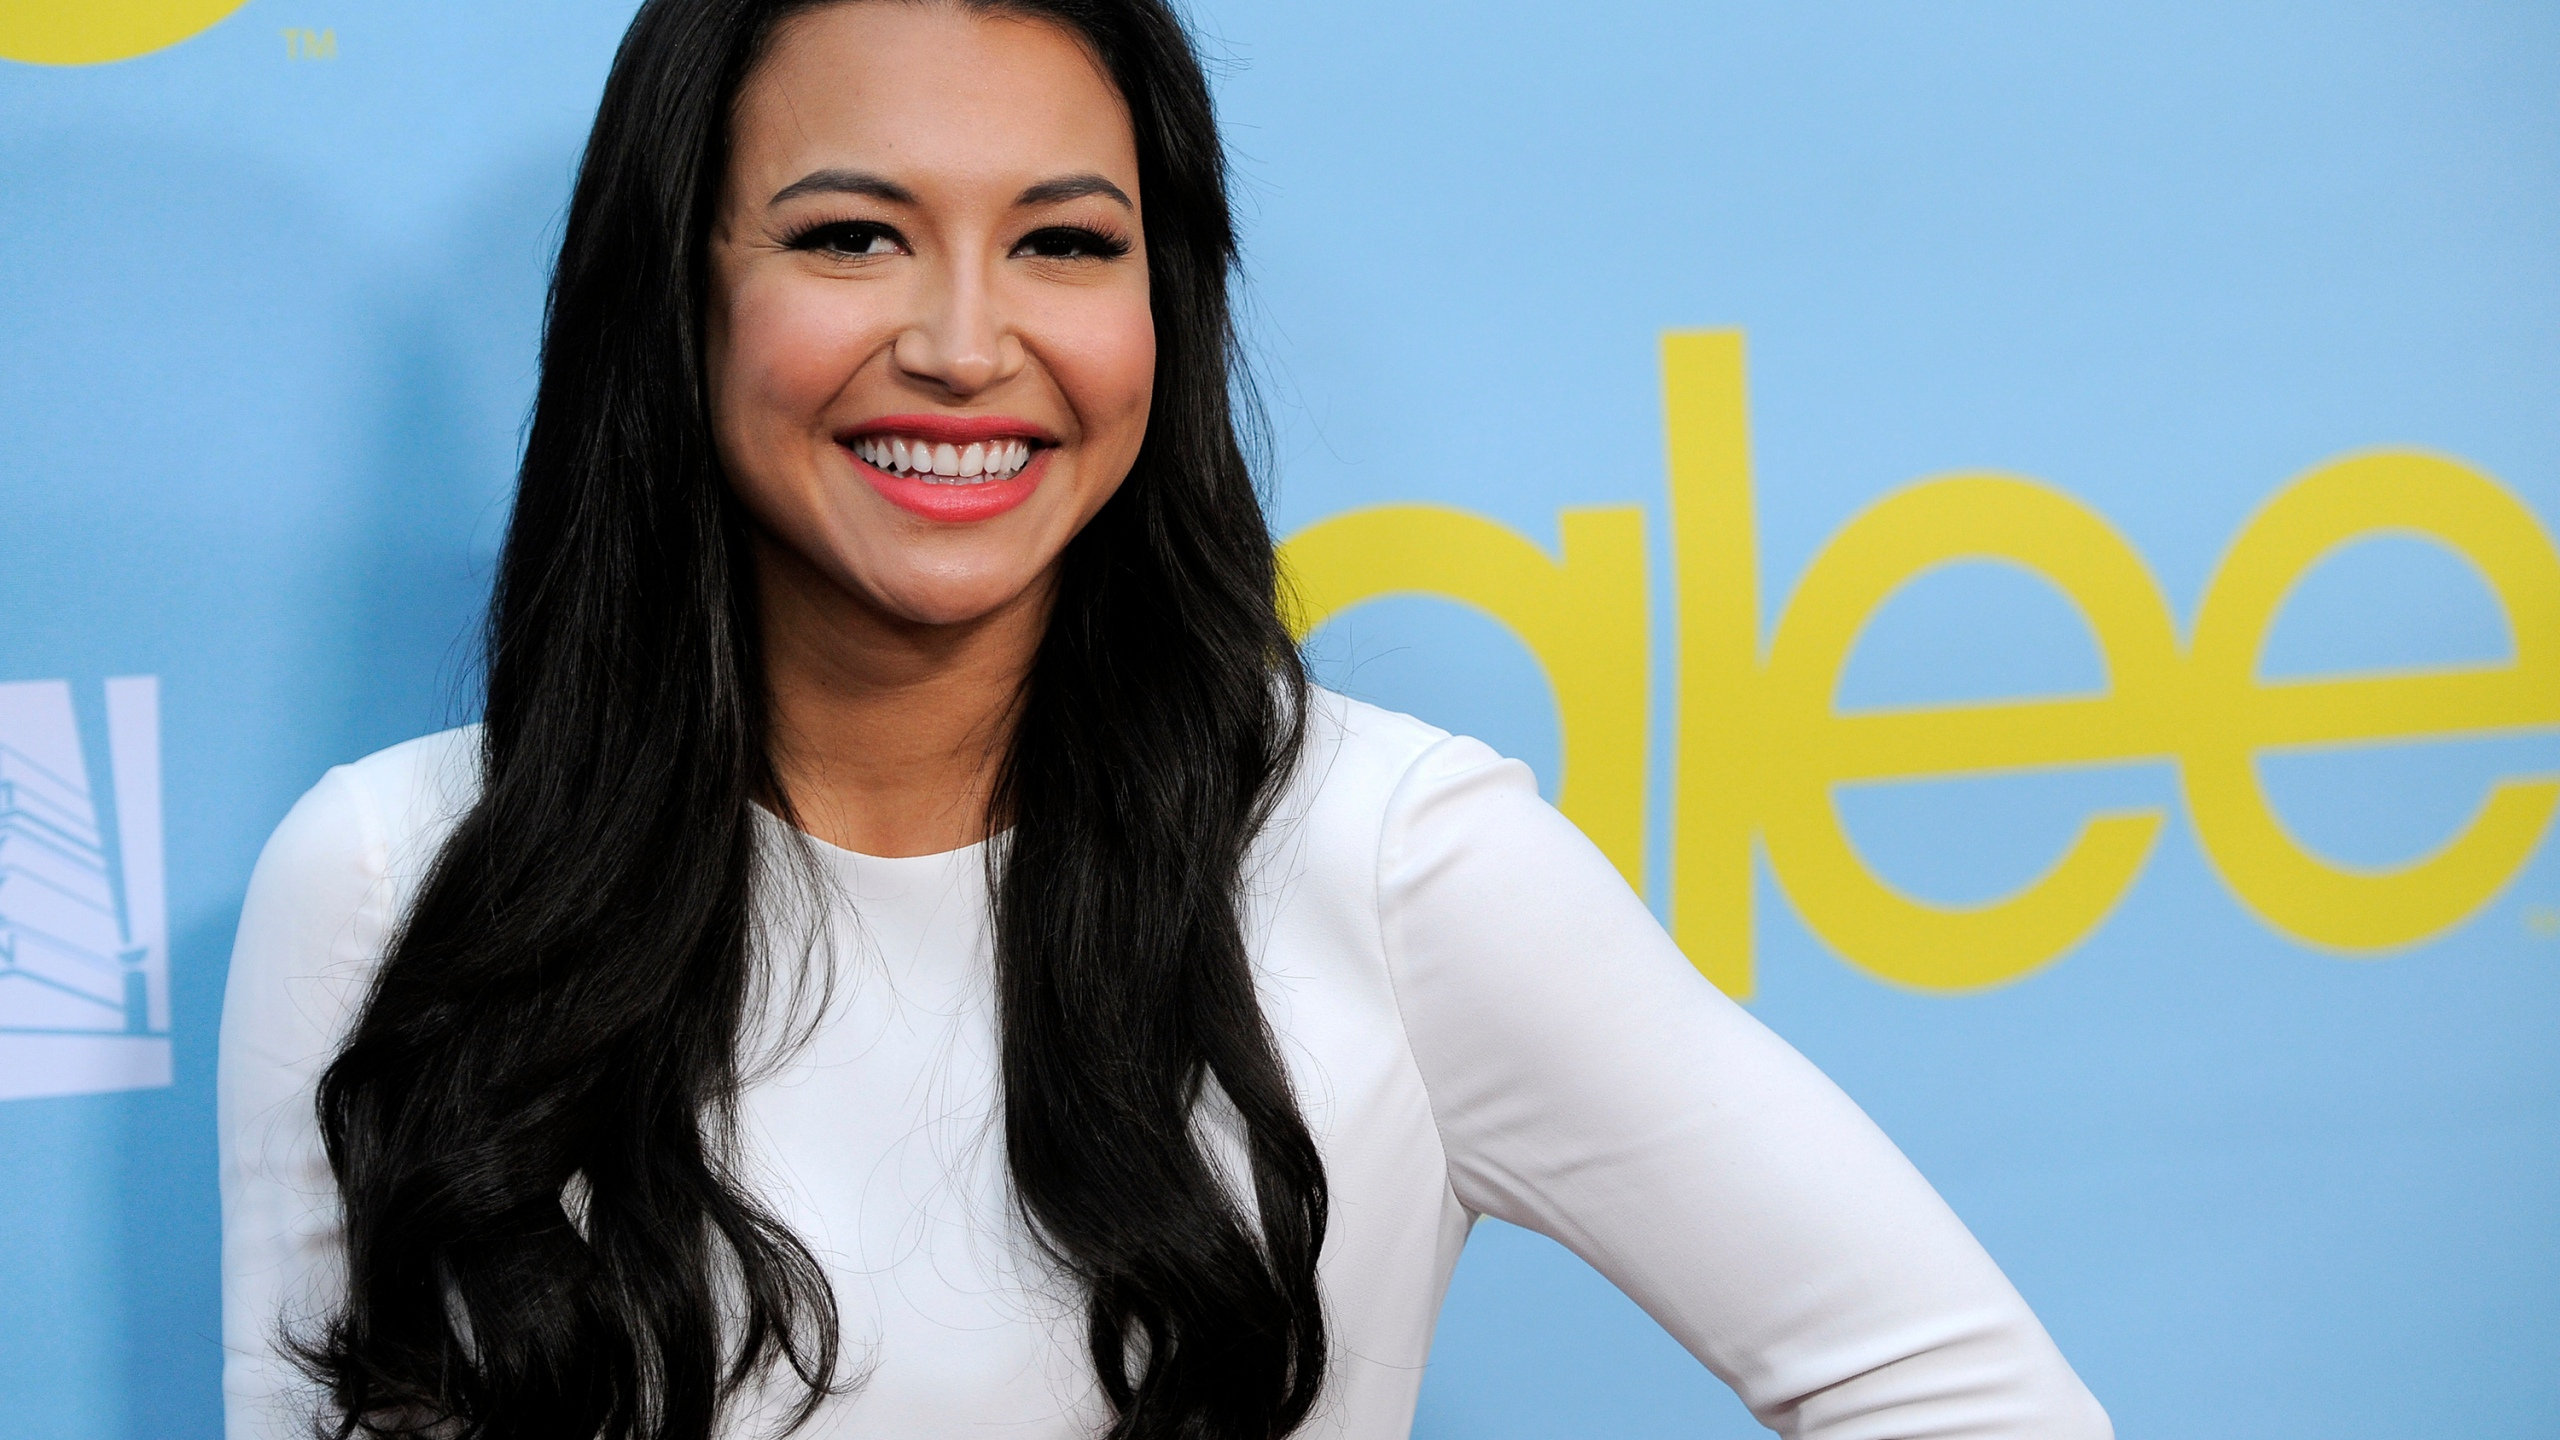 "Naya Rivera, a cast member in the television series ""Glee,"" poses at a screening and Q&A for the show, at the Academy of Television Arts and Sciences in Los Angeles on May 1, 2012. Authorities say a body has been found at a Southern California lake during the search for ""Glee"" star Naya Rivera. The Ventura County Sheriff's Office says in a tweet that the body was found Monday morning, July 13, 2020, in the search of Lake Piru for Rivera, five days after her 4-year-old son was found alone in a boat the two had rented. (AP Photo/Chris Pizzello, File)"